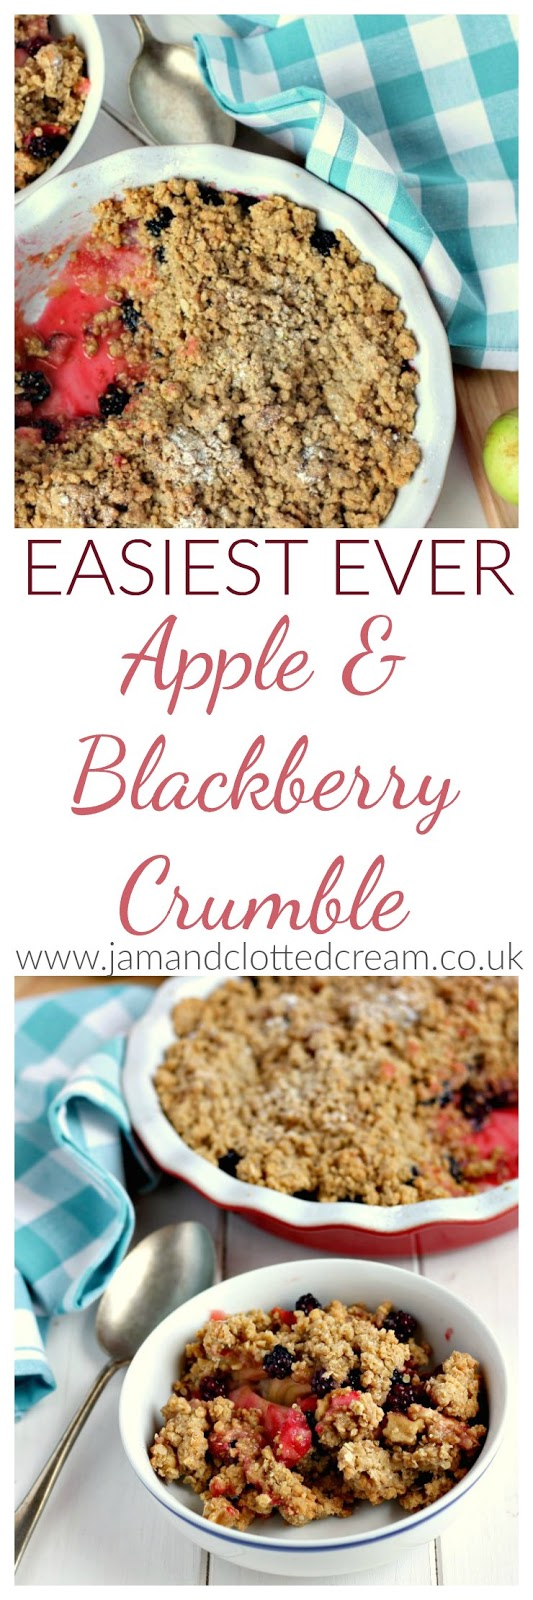 Easiest Ever Apple & Blackberry Crumble